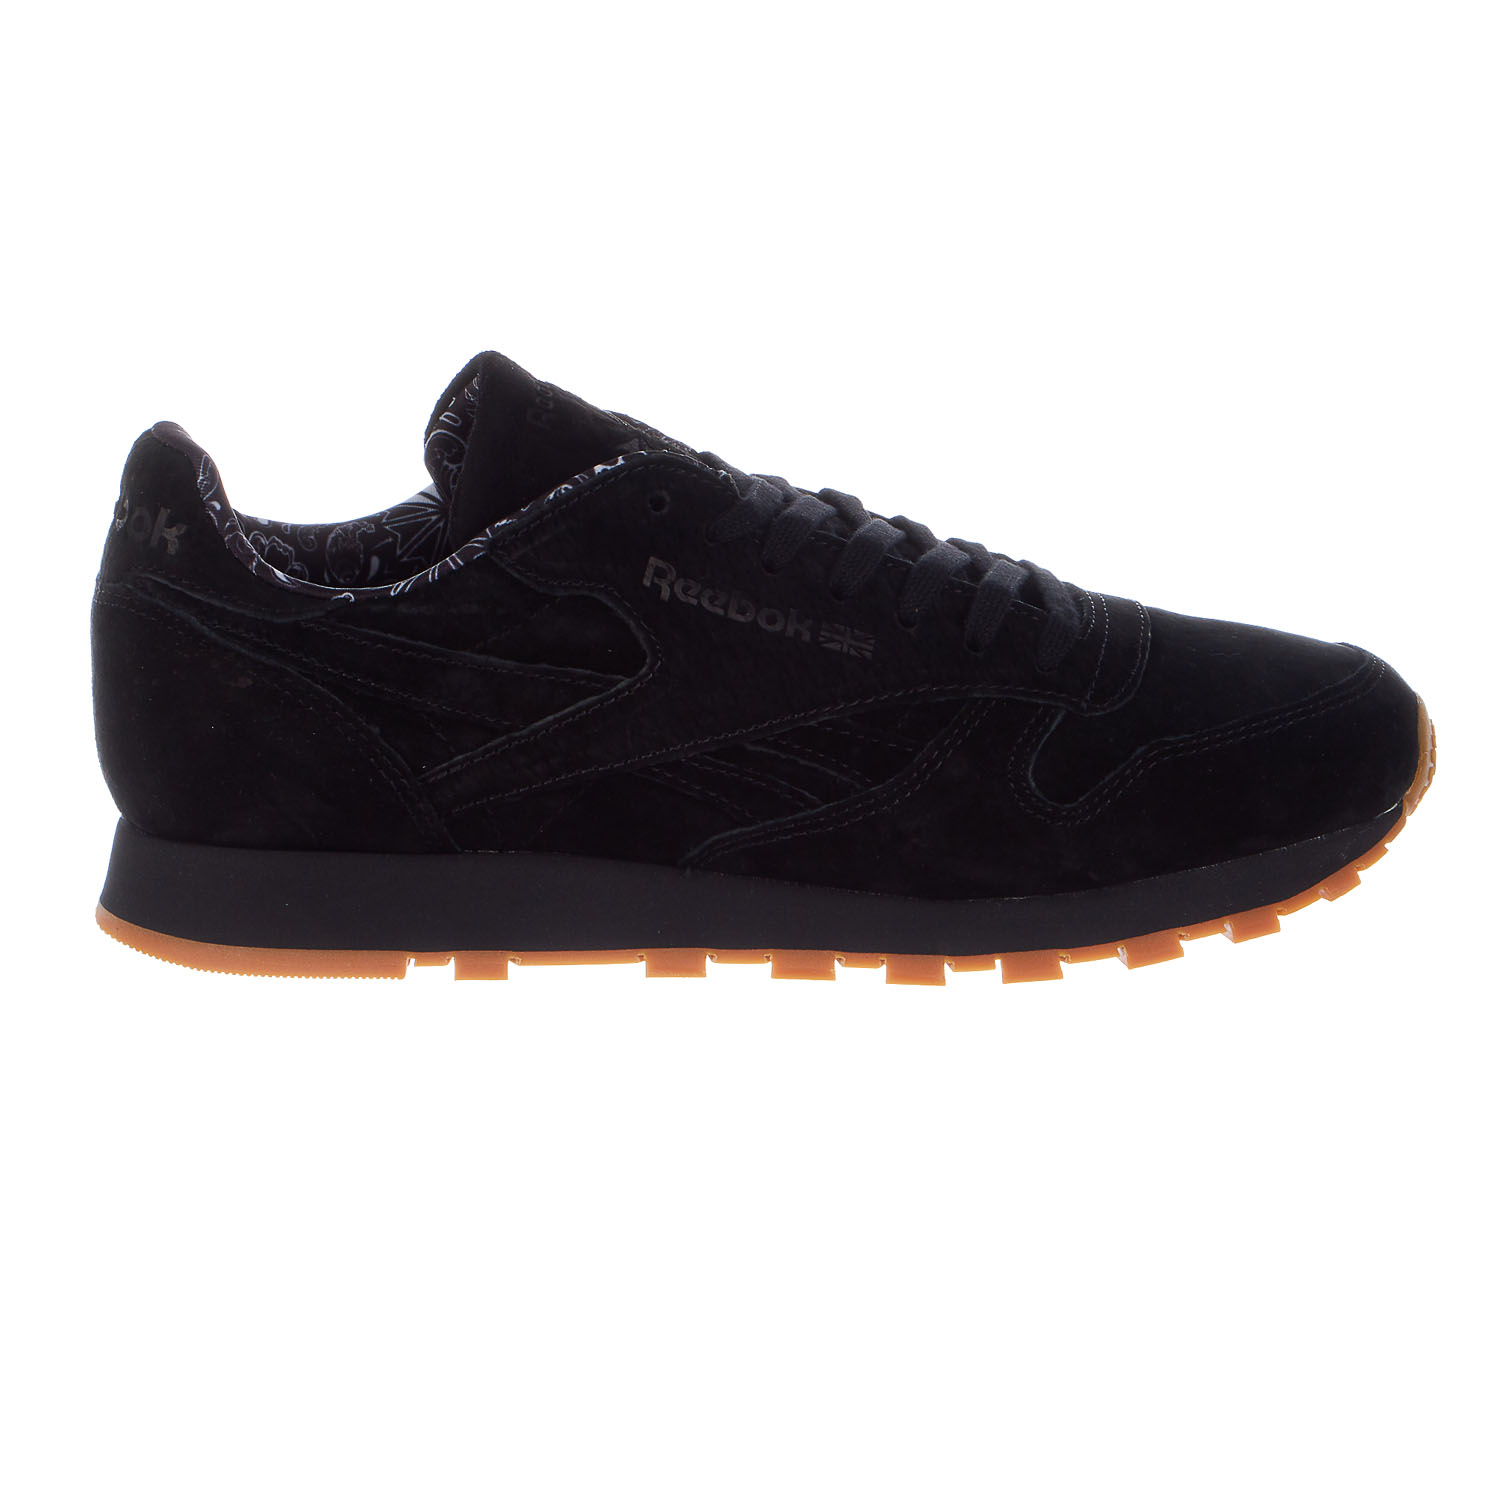 Reebok Classic Leather TDC Fashion Sneakers Mens by Reebok